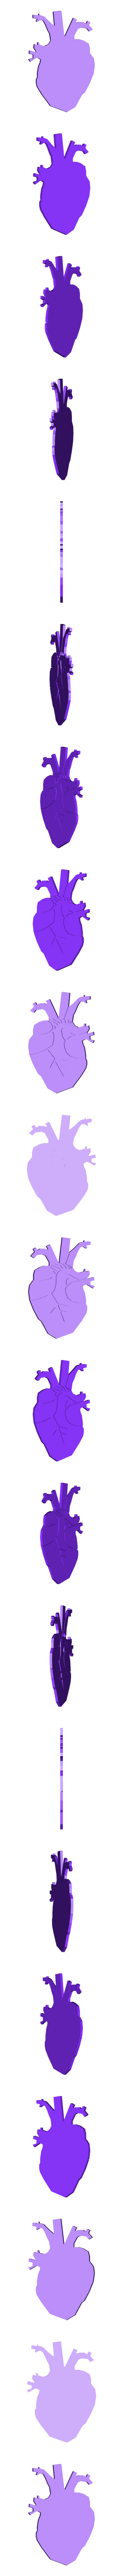 hjerte_indrekageformversion2.stl Download STL file Cookiecutter Heart • 3D printing object, Lina_Thomas